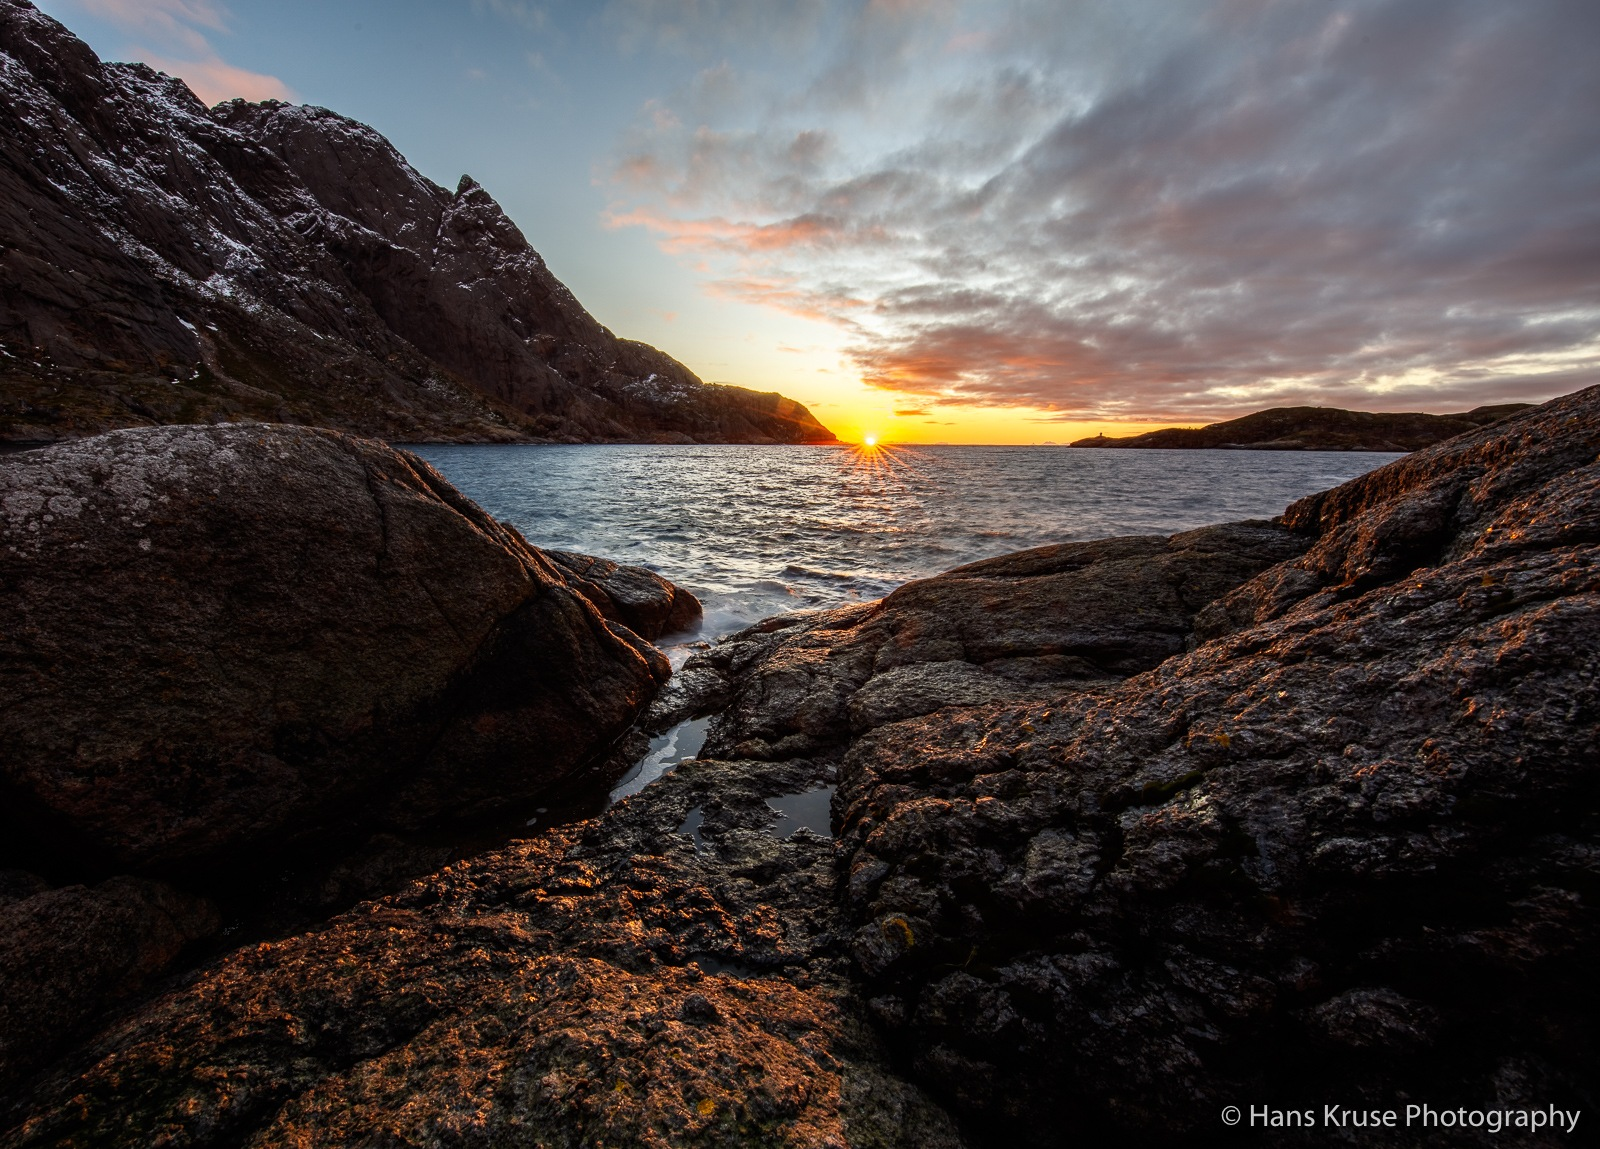 Morning at the sea by Hans Kruse